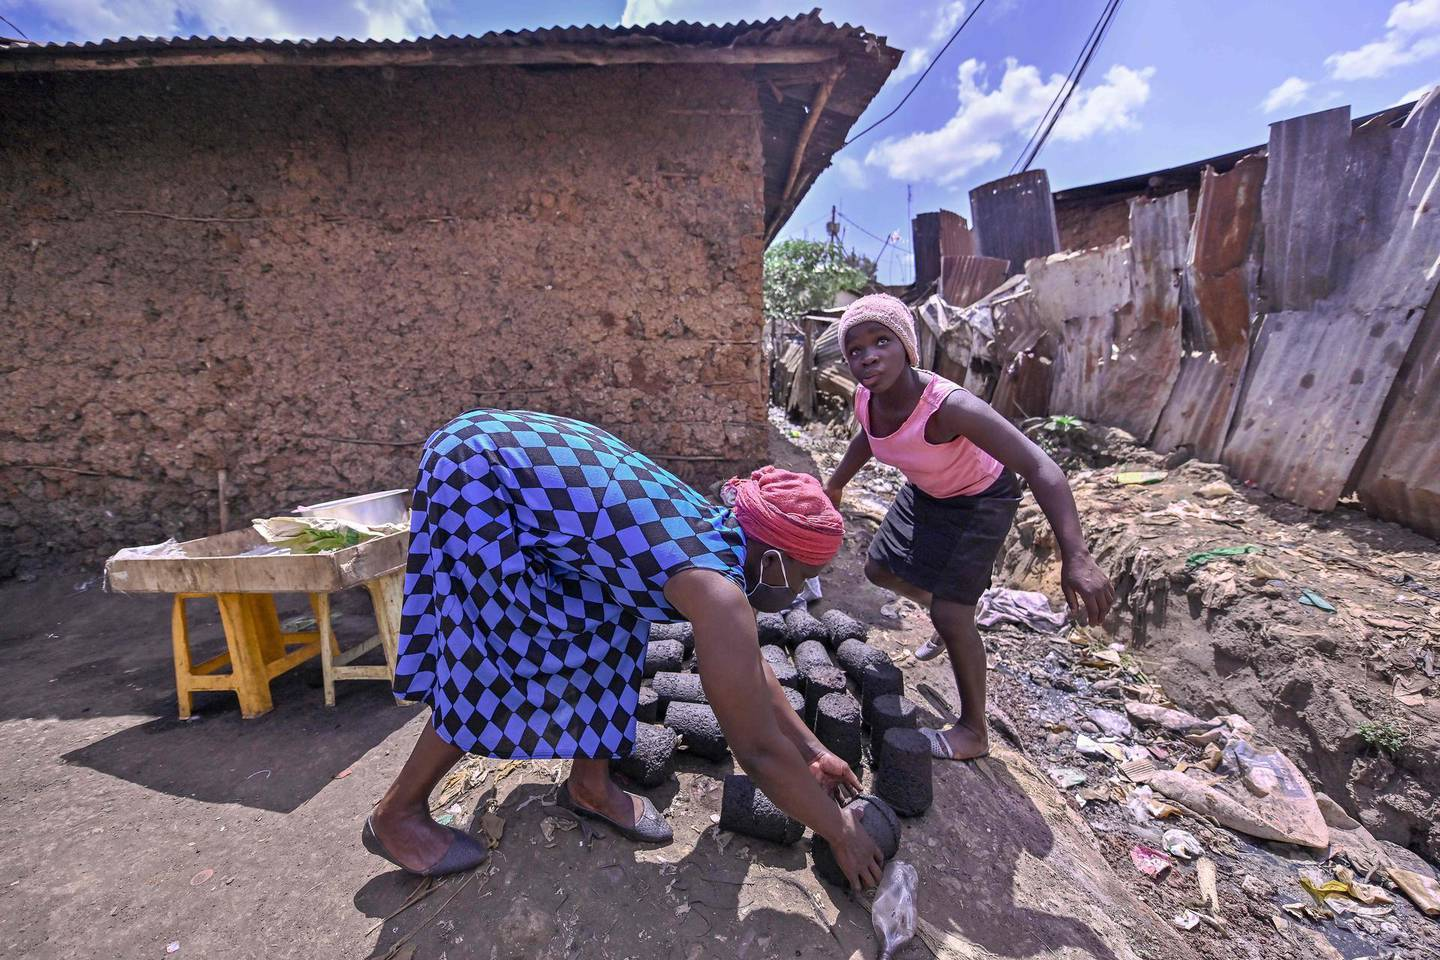 Bella Achieng (R), works with her mother Lilian Adhiambo at her open-air groceries stand near their home in Kibera slum, in Nairobi, on August 7, 2020, as schools remain closed across the country following a government directive as a measure to stem the spread of the COVID-19 (novel coronavirus). Achieng is a student at Kibera School for Girls that is run by Kenya-based charity Shining Hope for Communities (SHOFCO) where needy students from the surrounding slum who are facing challenges at home with access to the internet for virtual learning are permitted to study at the premises in order to access the wi-fi. Many private primary and secondary schools continue offering virtual lessons to their students at home. This is however a challenge for others who cannot afford a smart phone or daily data costs. / AFP / TONY KARUMBA